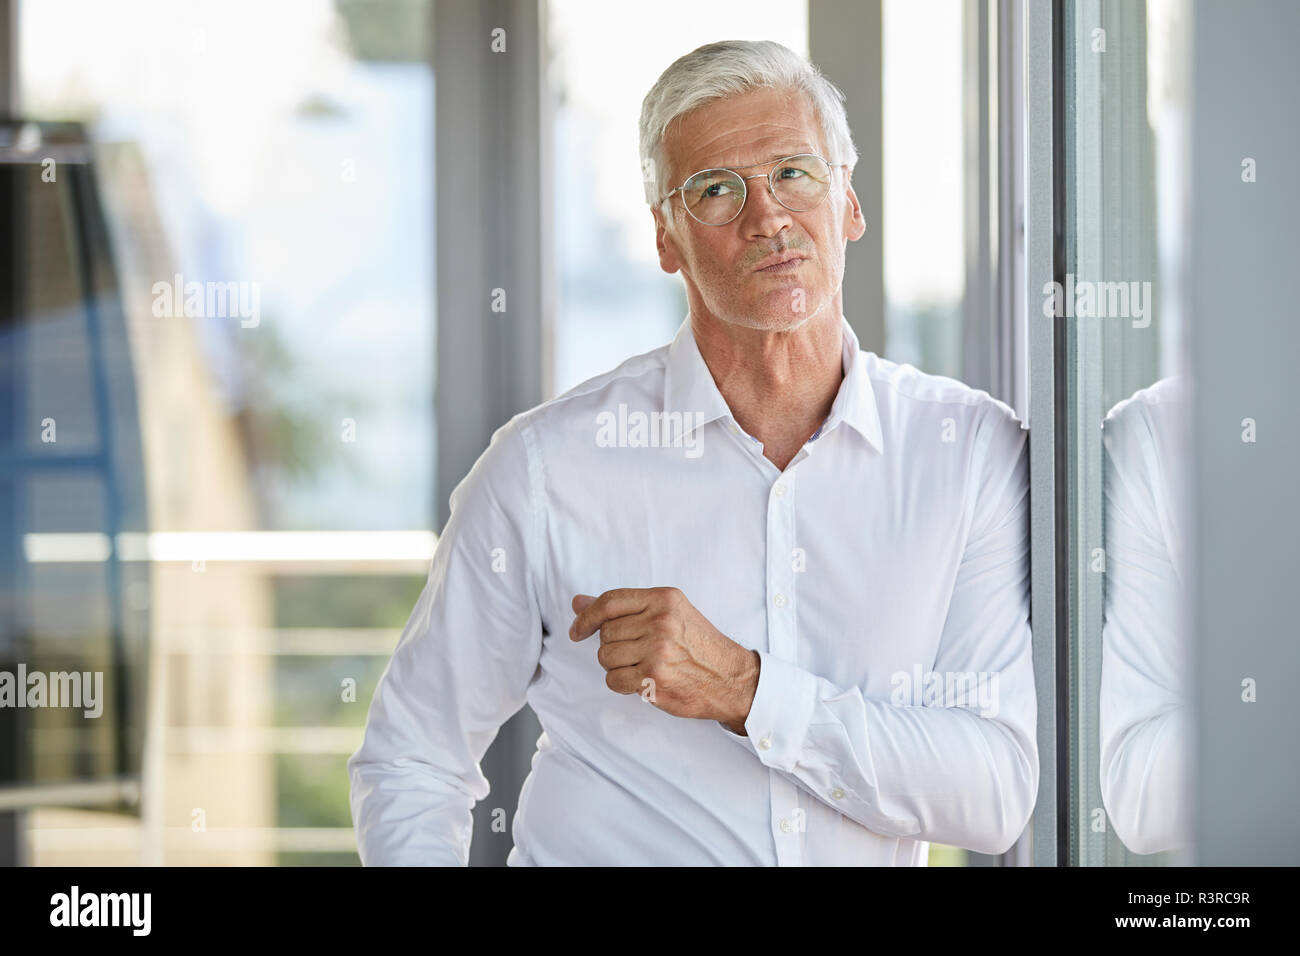 Businessman standing by window, contemplating - Stock Image